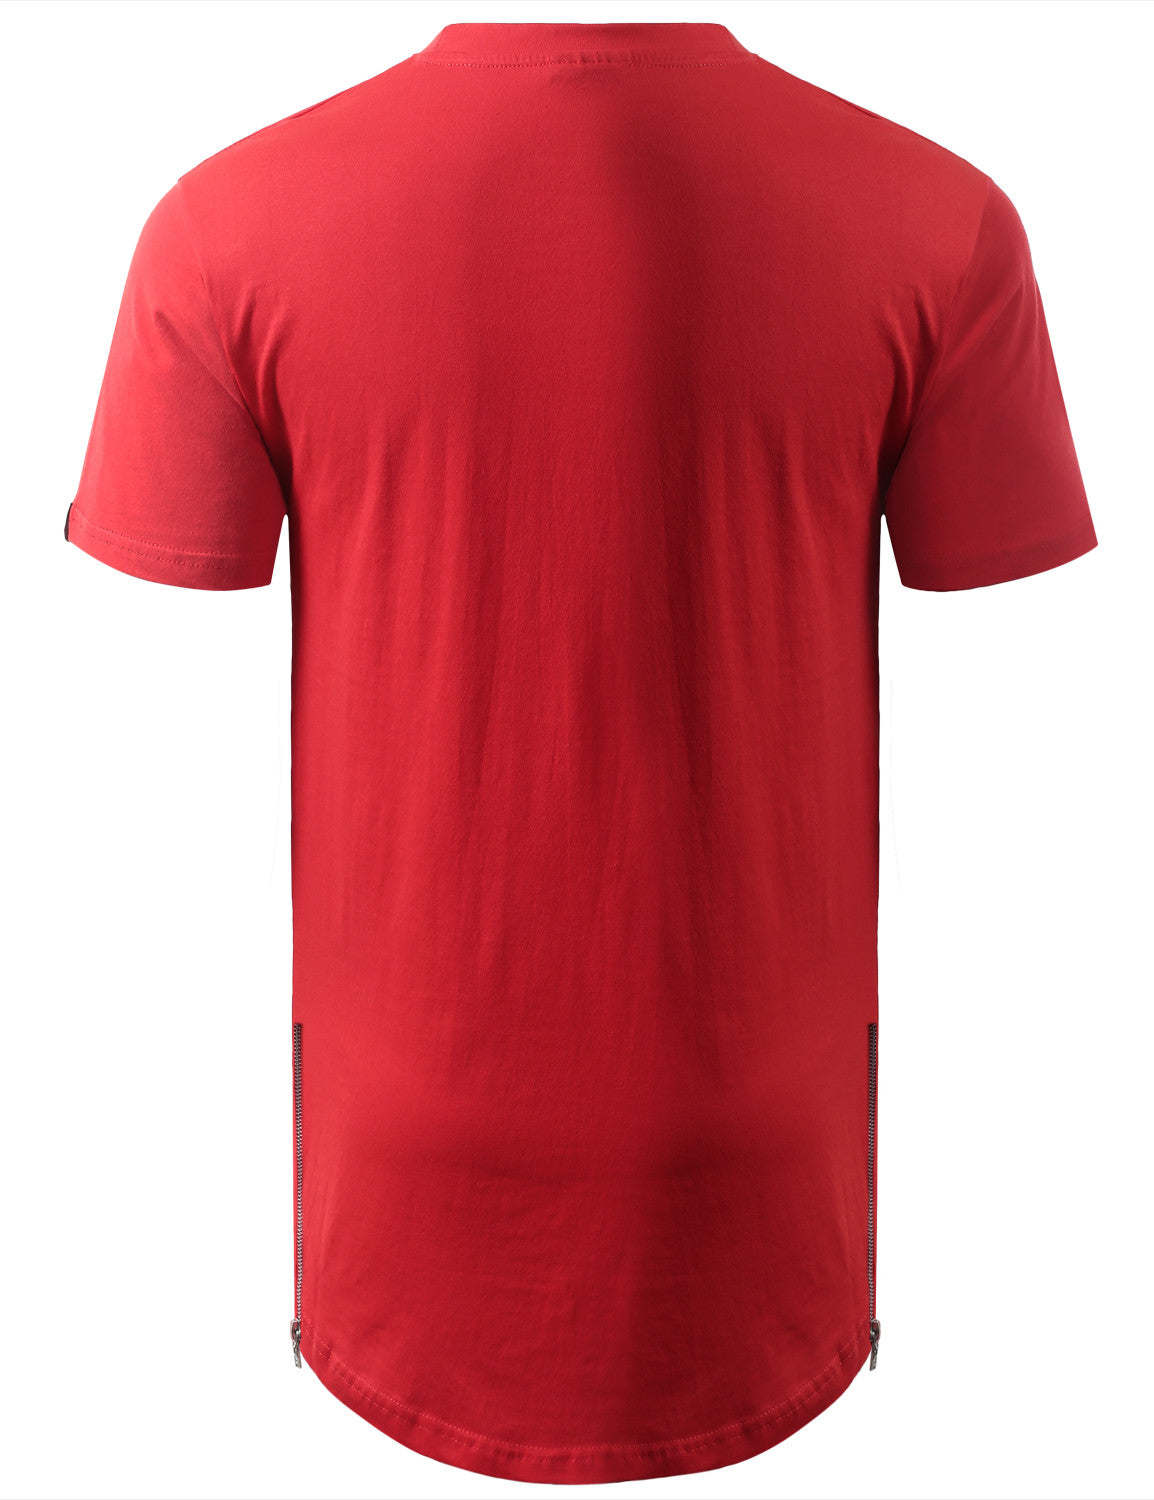 RED Marled Longline Crewneck Tshirts with Side Zipper